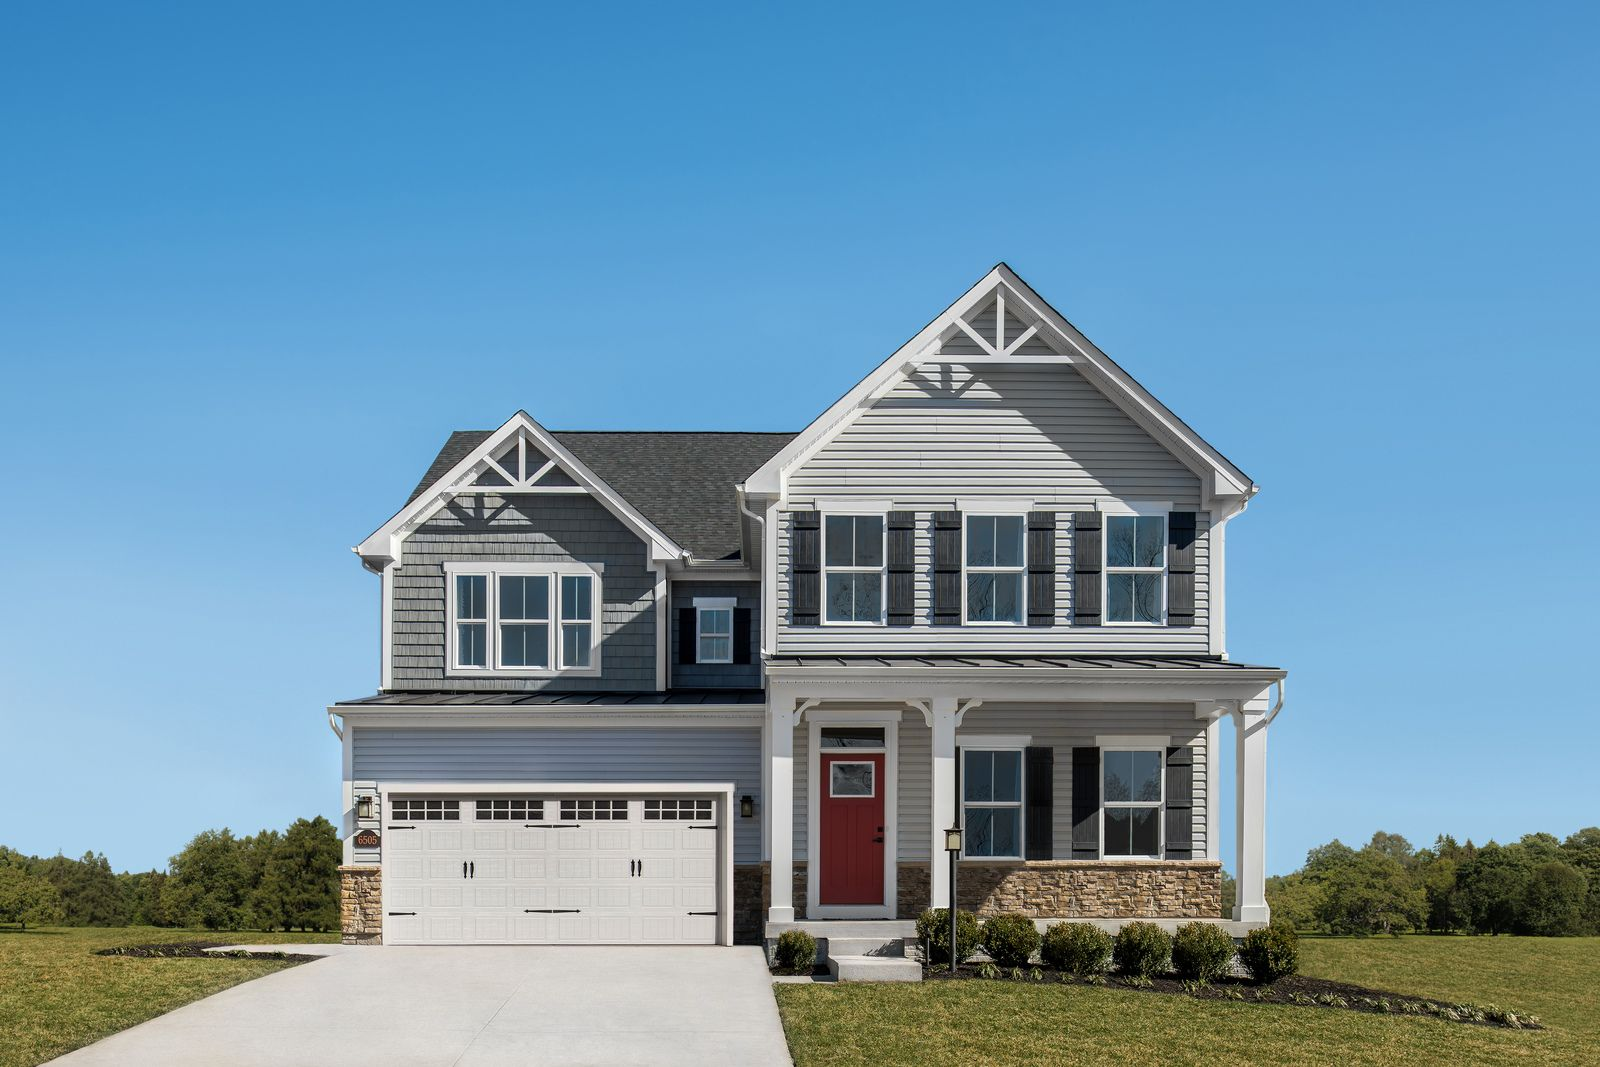 Welcome Home to Windsor Estates:Enjoy ½ acre homesites in Lakota schools, minutes from shopping and dining, from the $280s!Click here to schedule a 1-on-1, phone, or video appointment